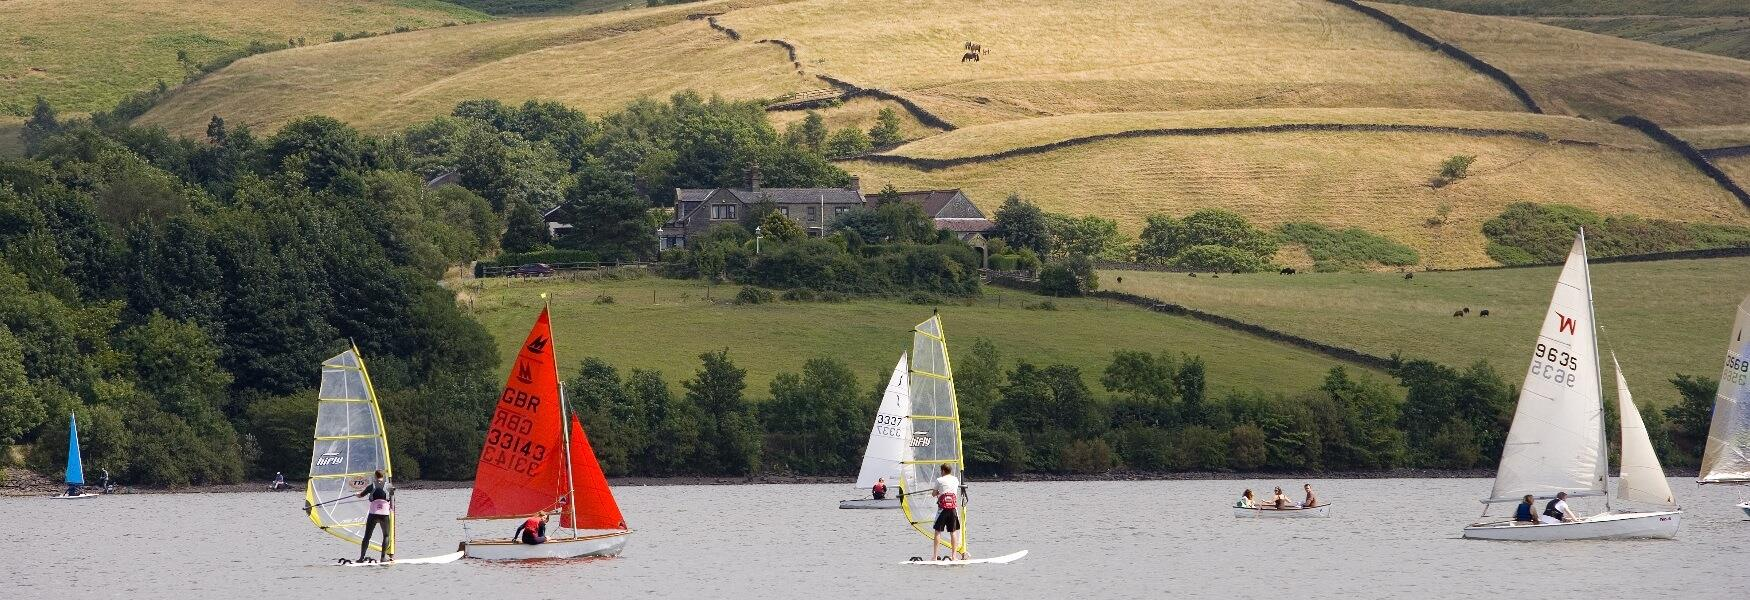 A group of small sailing boats on Hollingworth Lake.